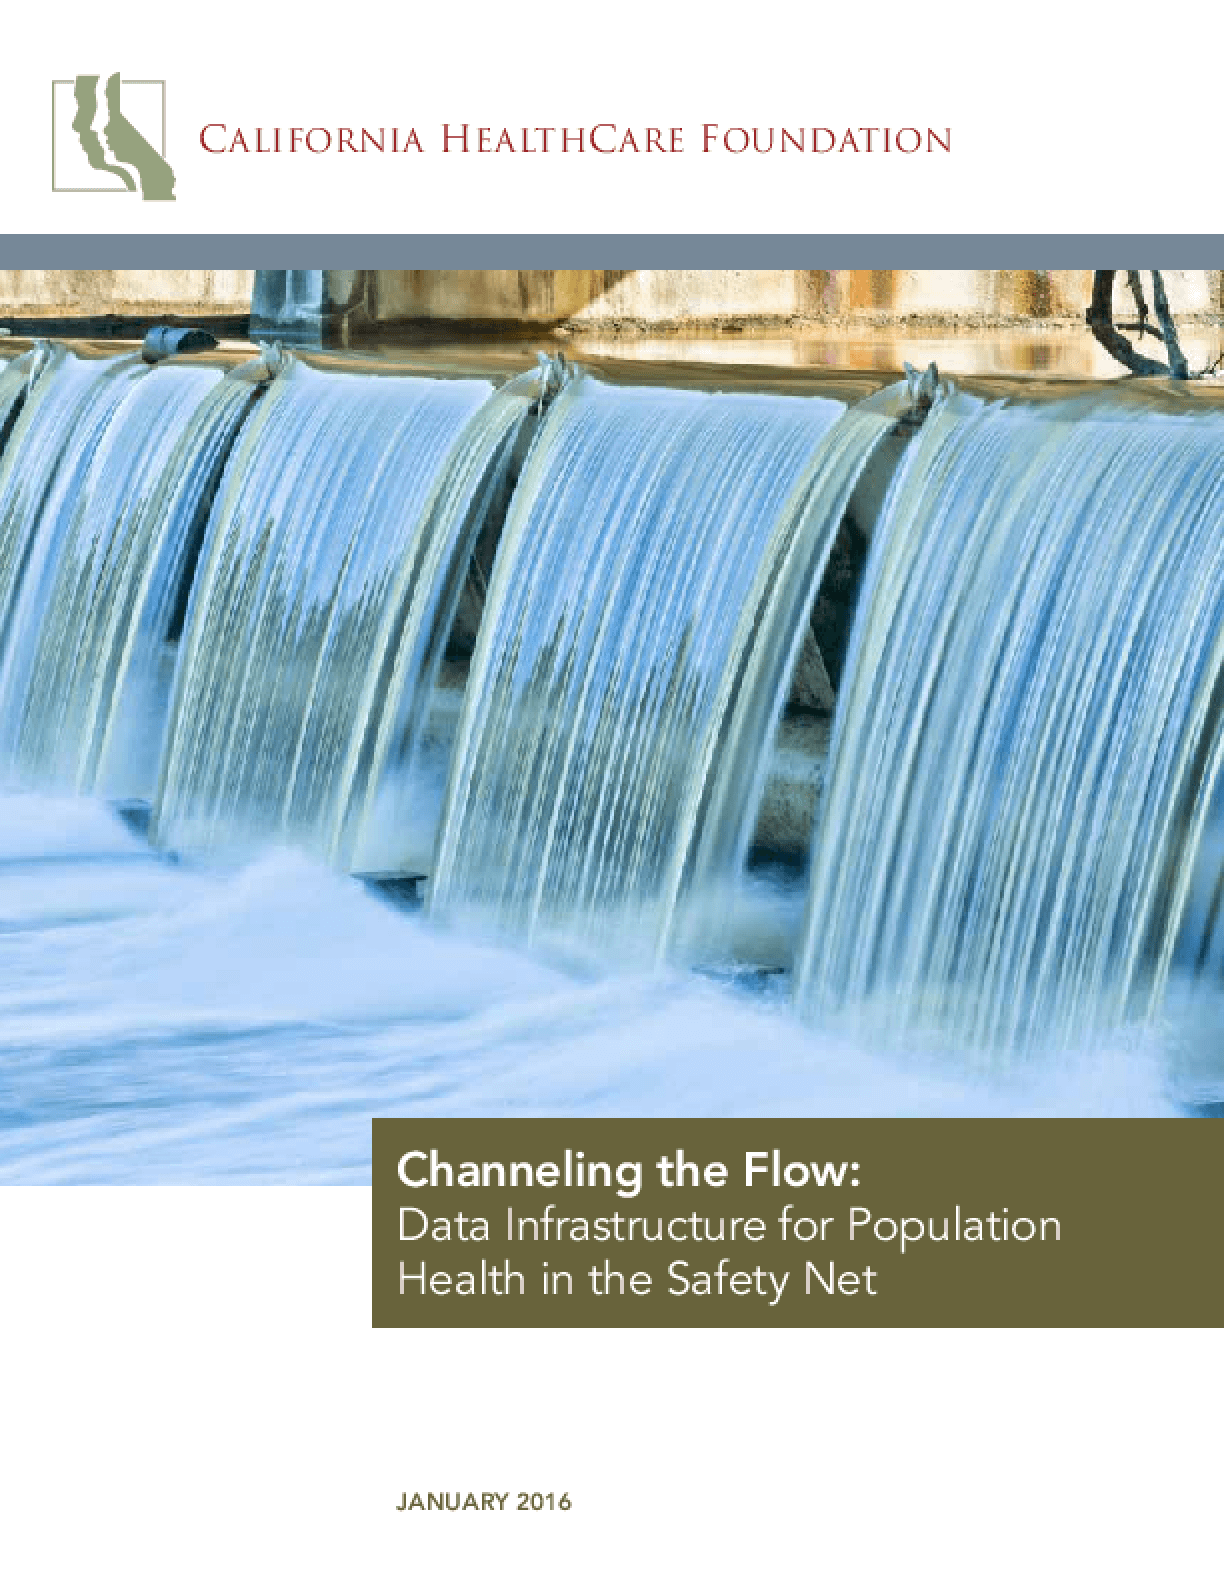 Channeling the Flow: Data Infrastructure for Population Health in the Safety Net